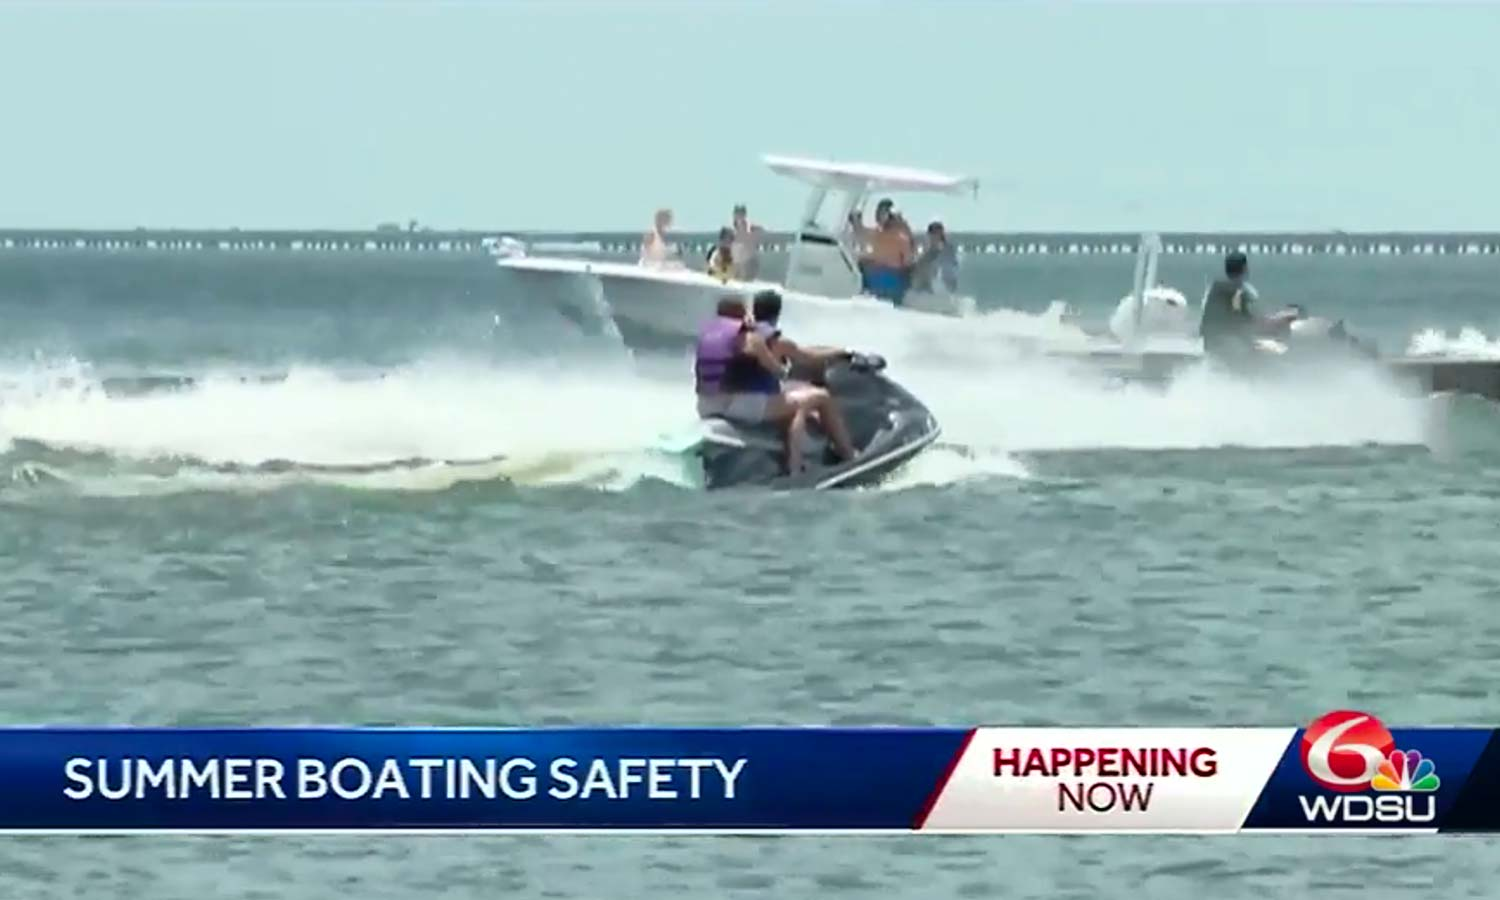 Summer Boating Safety